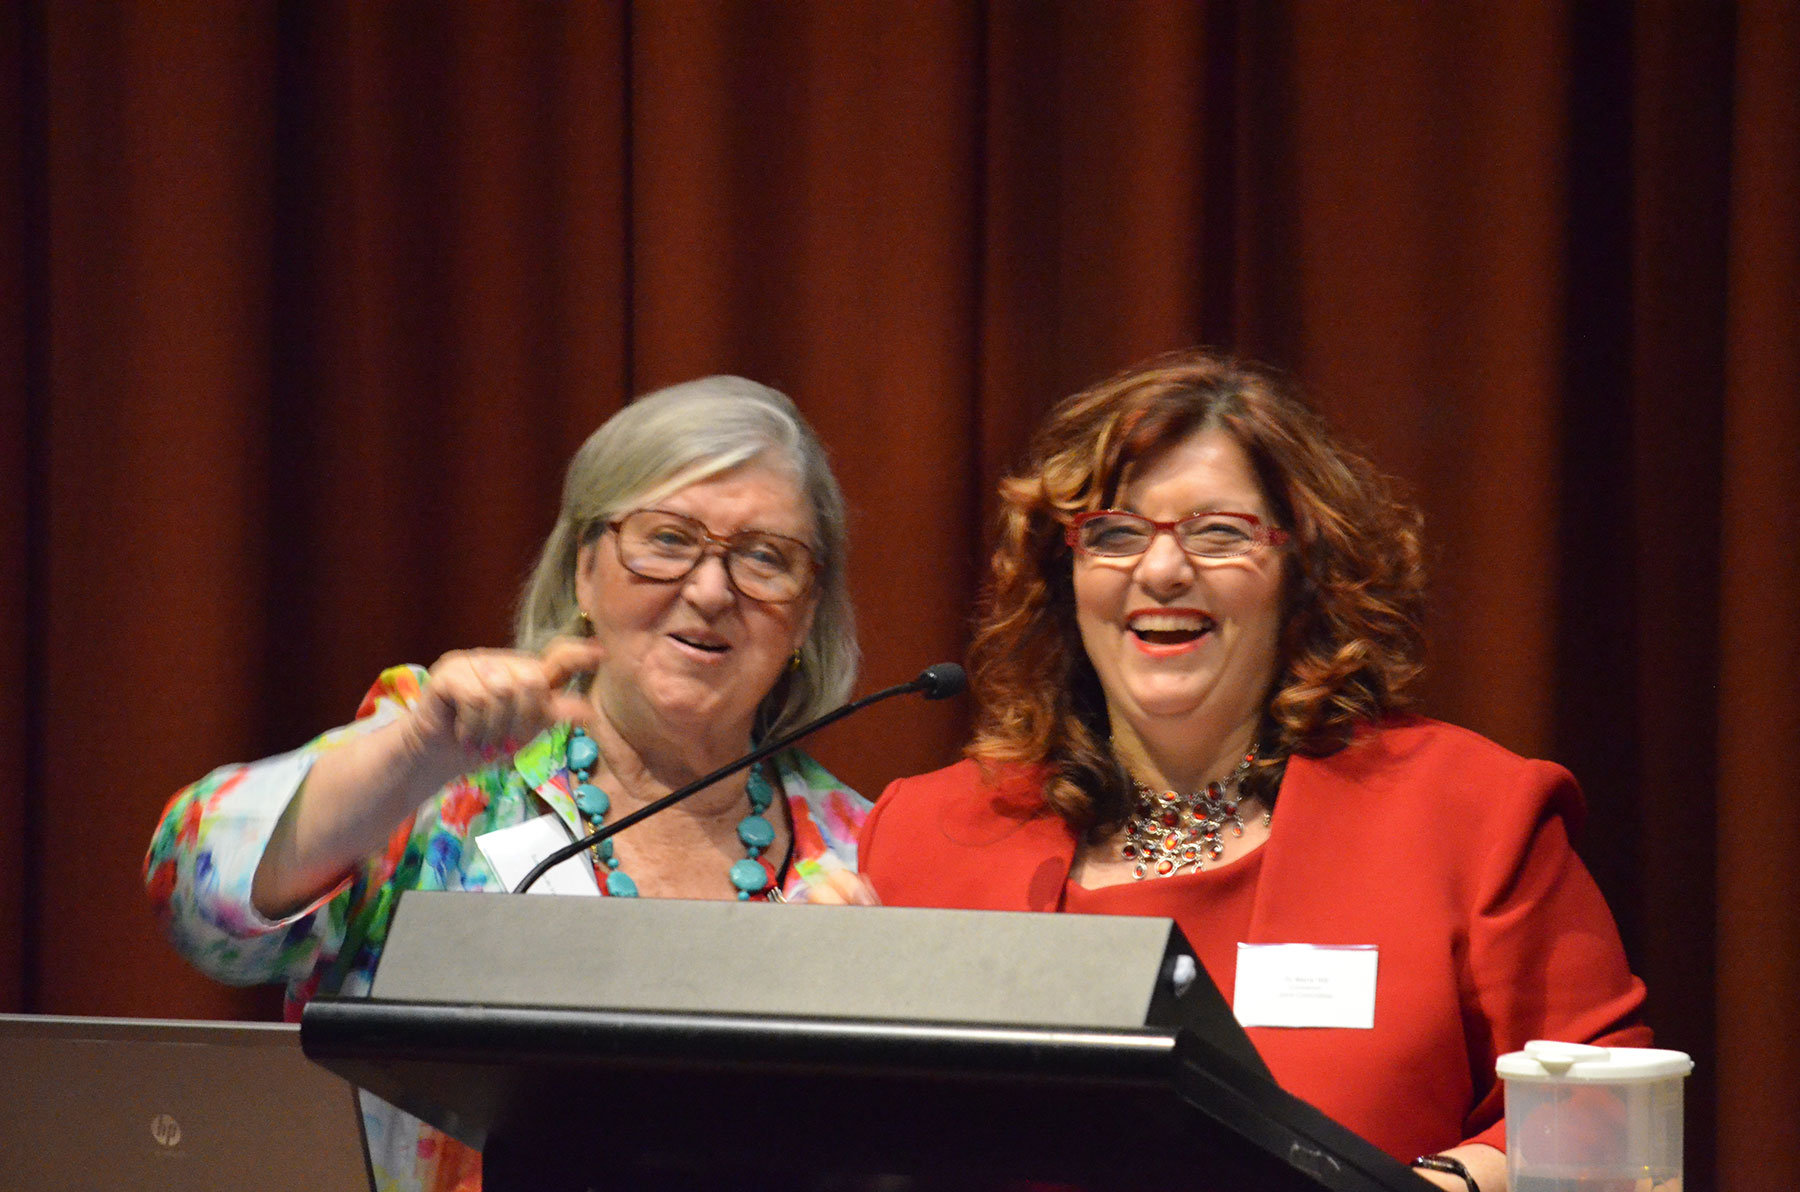 09 Symposium 6th Dec 2012. Susanna De Vries With Maria Hill